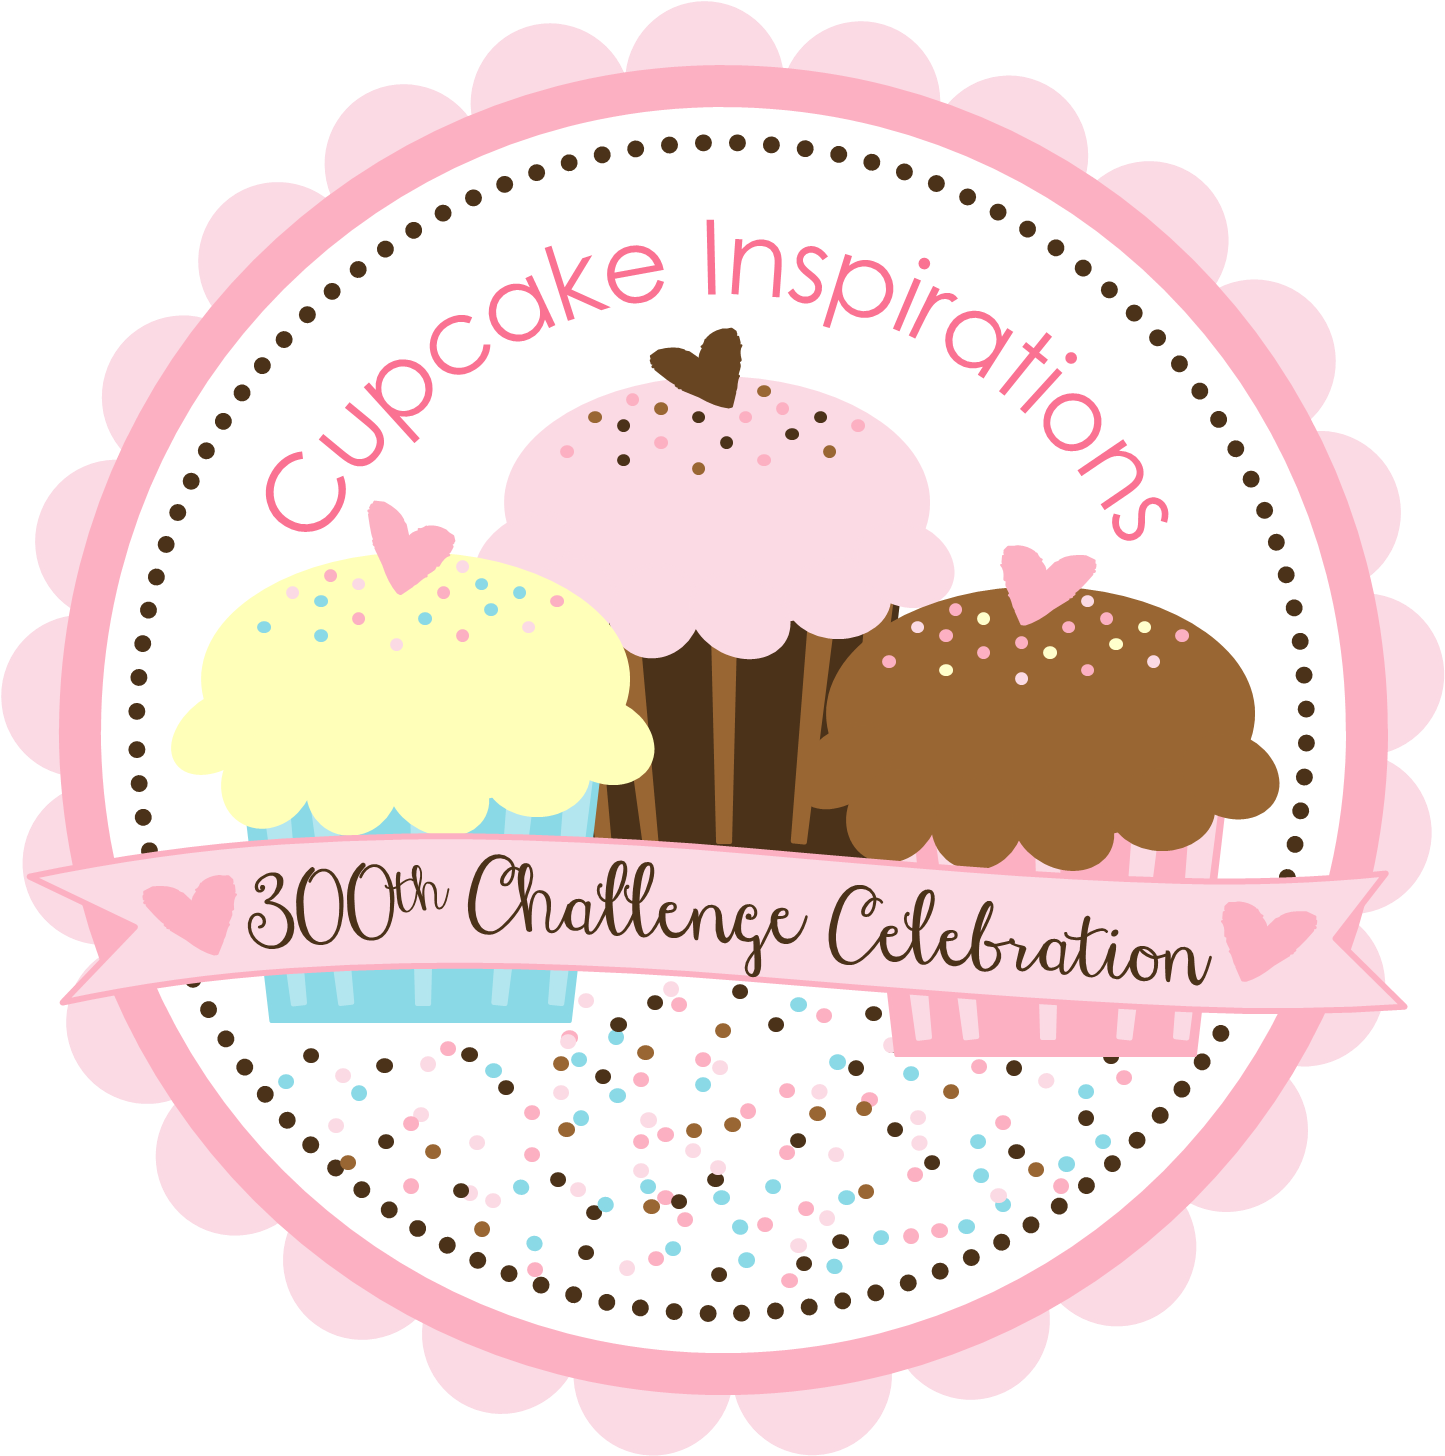 Cupcake Inspirations 300th Challenge